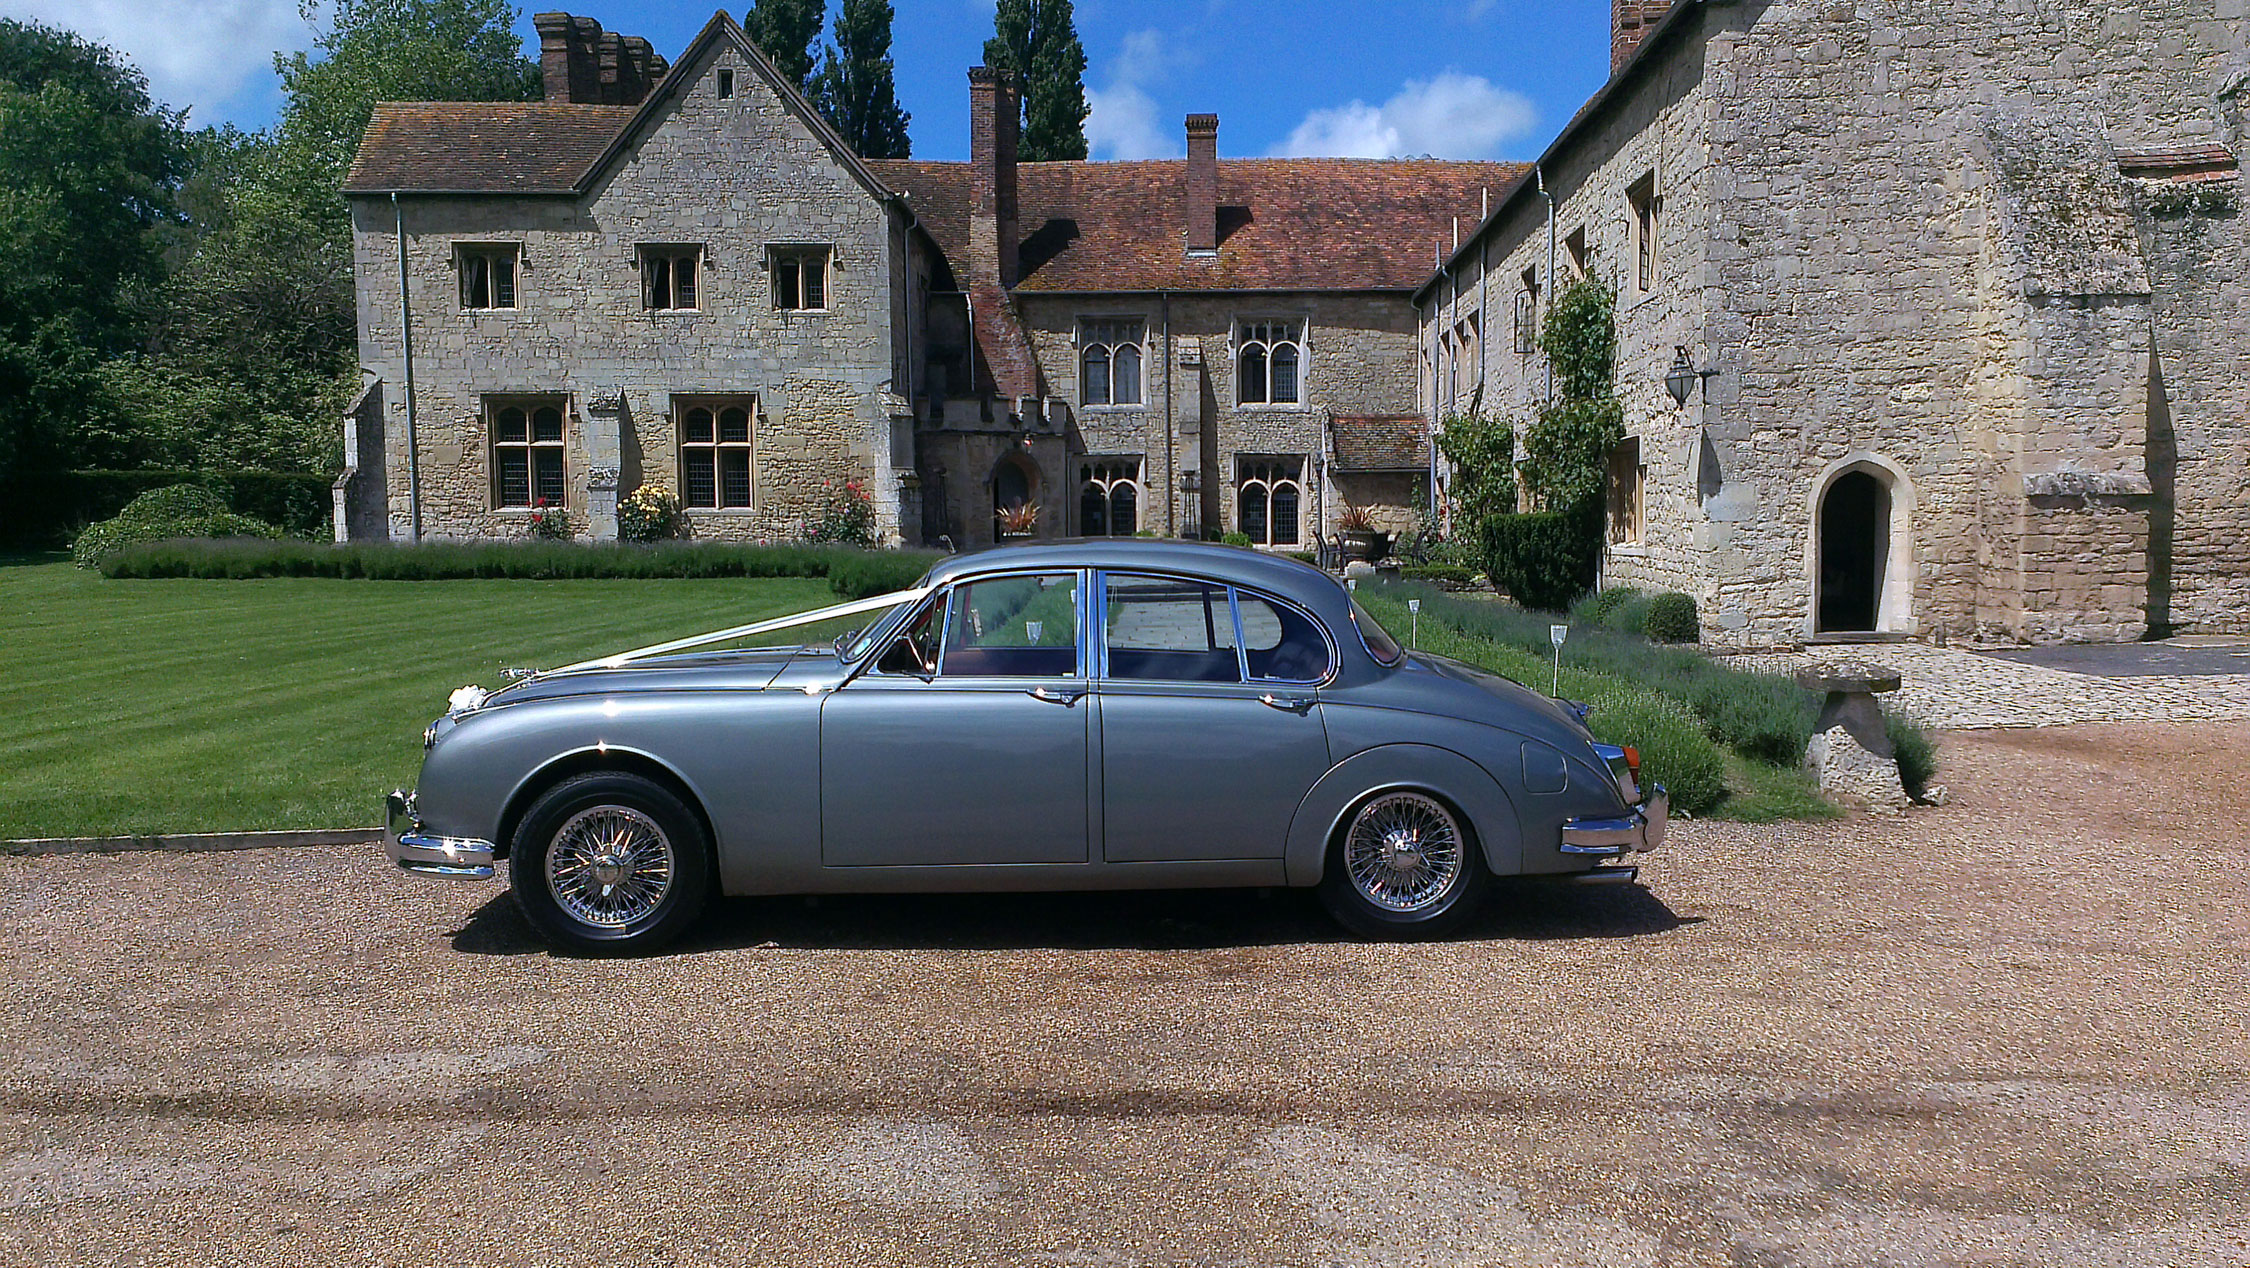 Notley Abbey Wedding Car